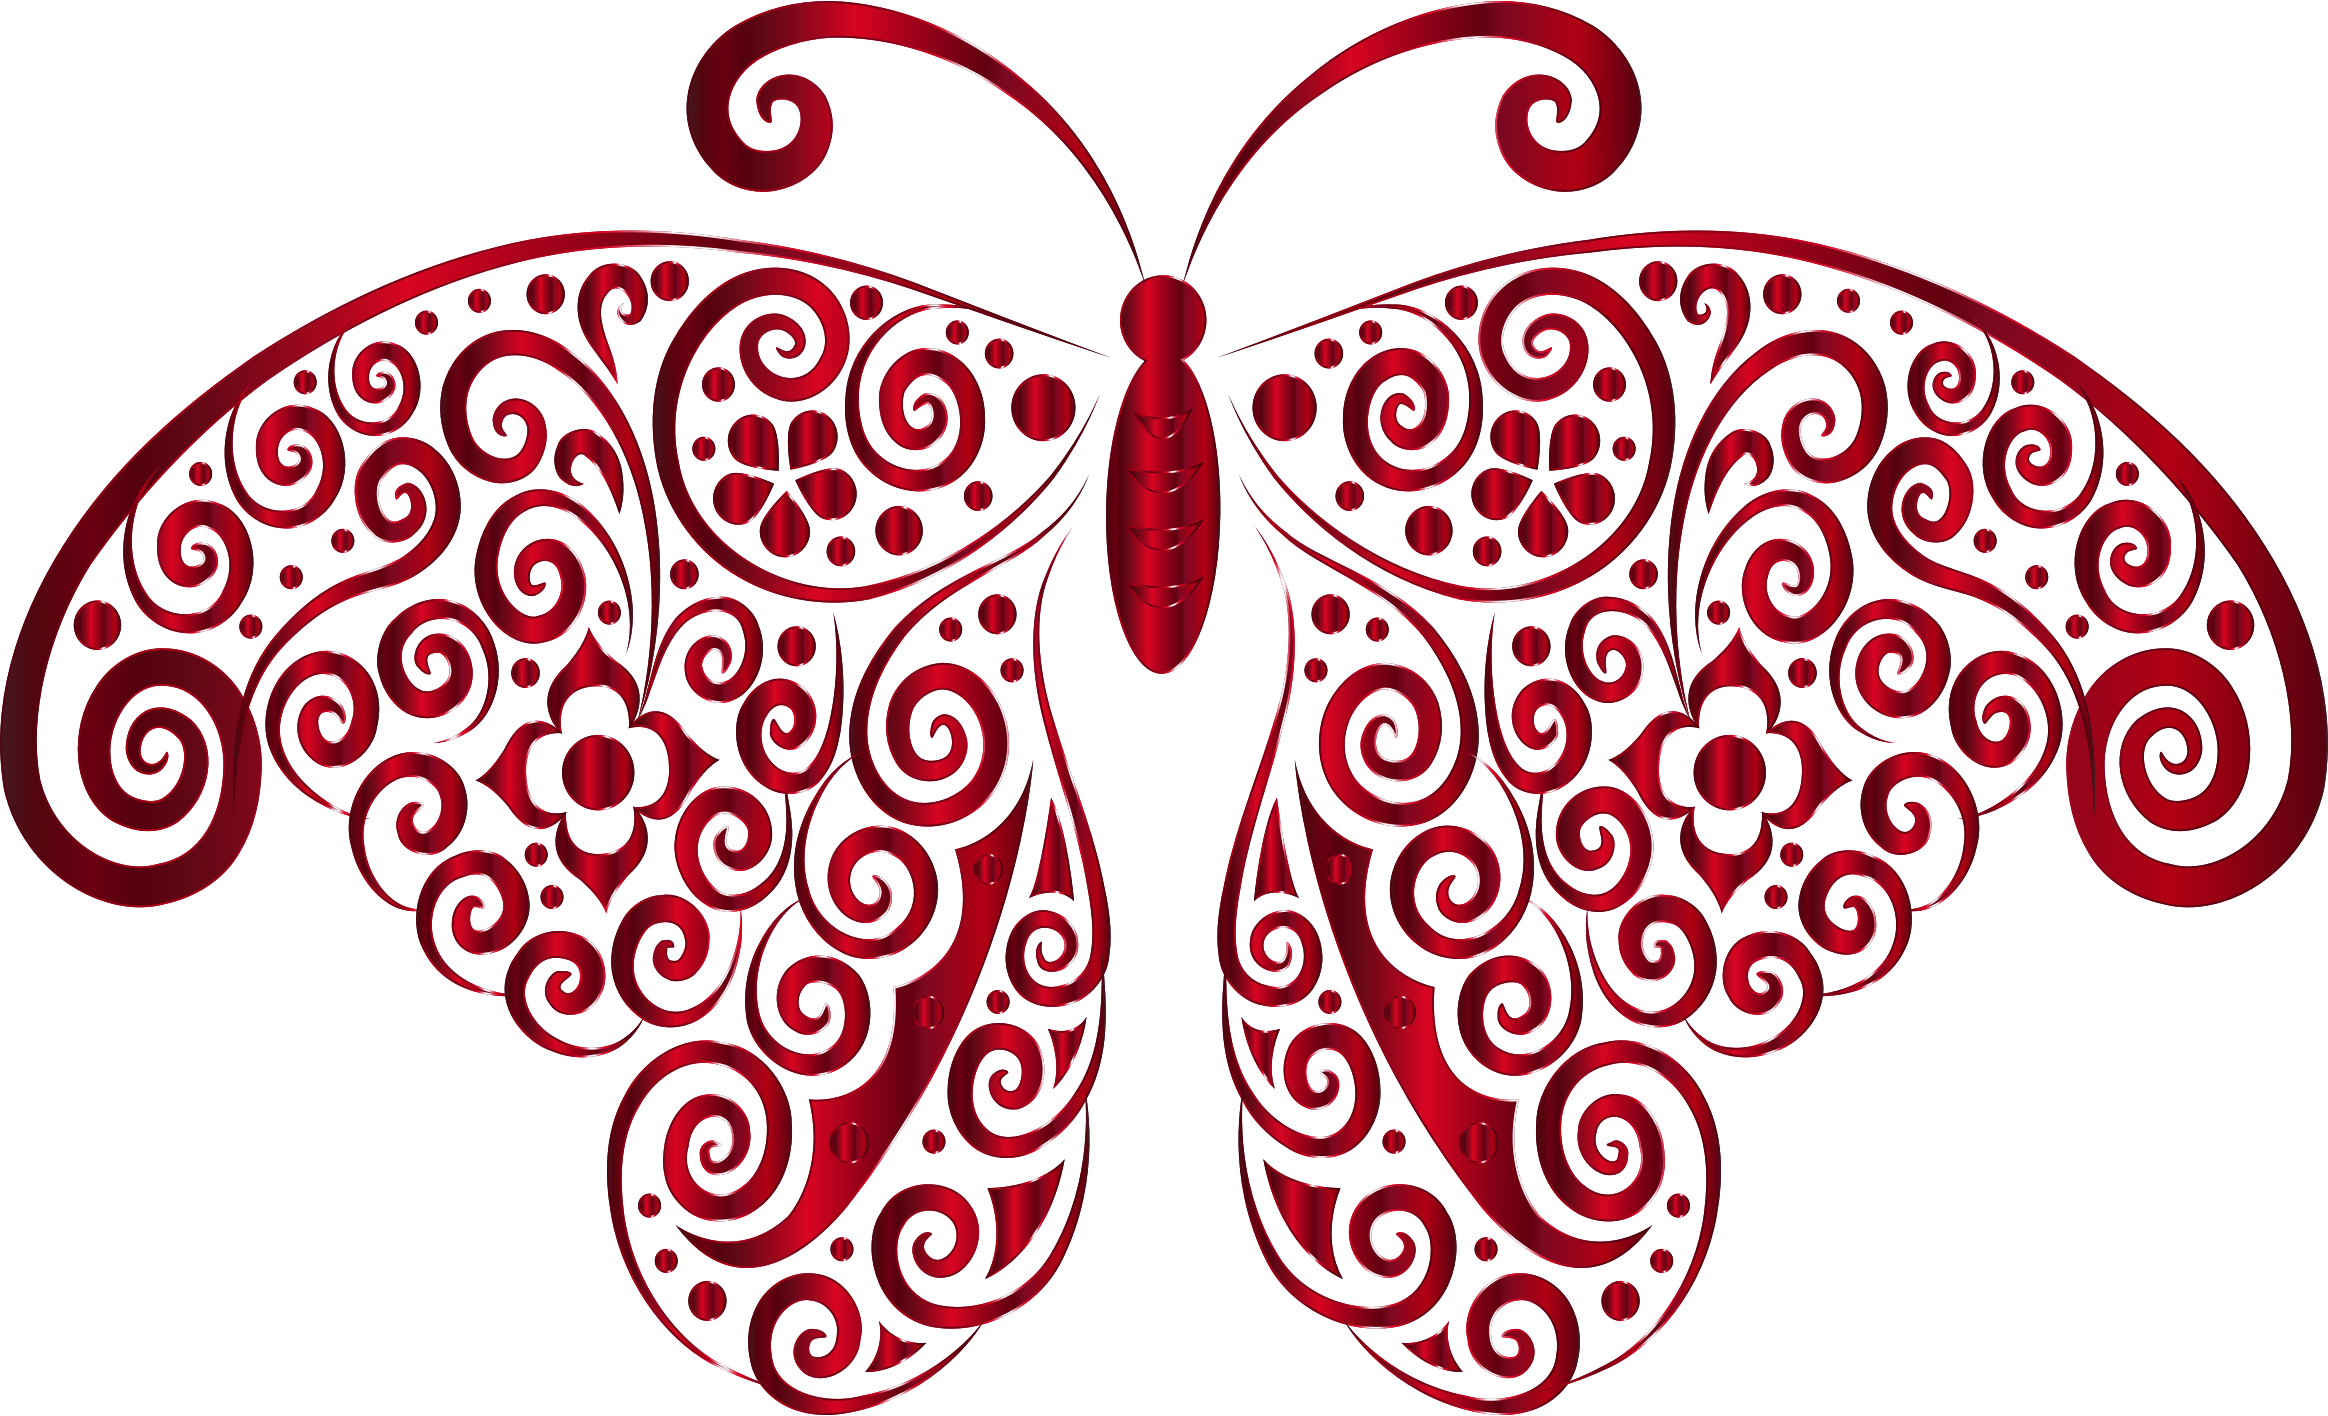 Prismatic Floral Flourish Butterfly Silhouette 6 No Background by GDJ